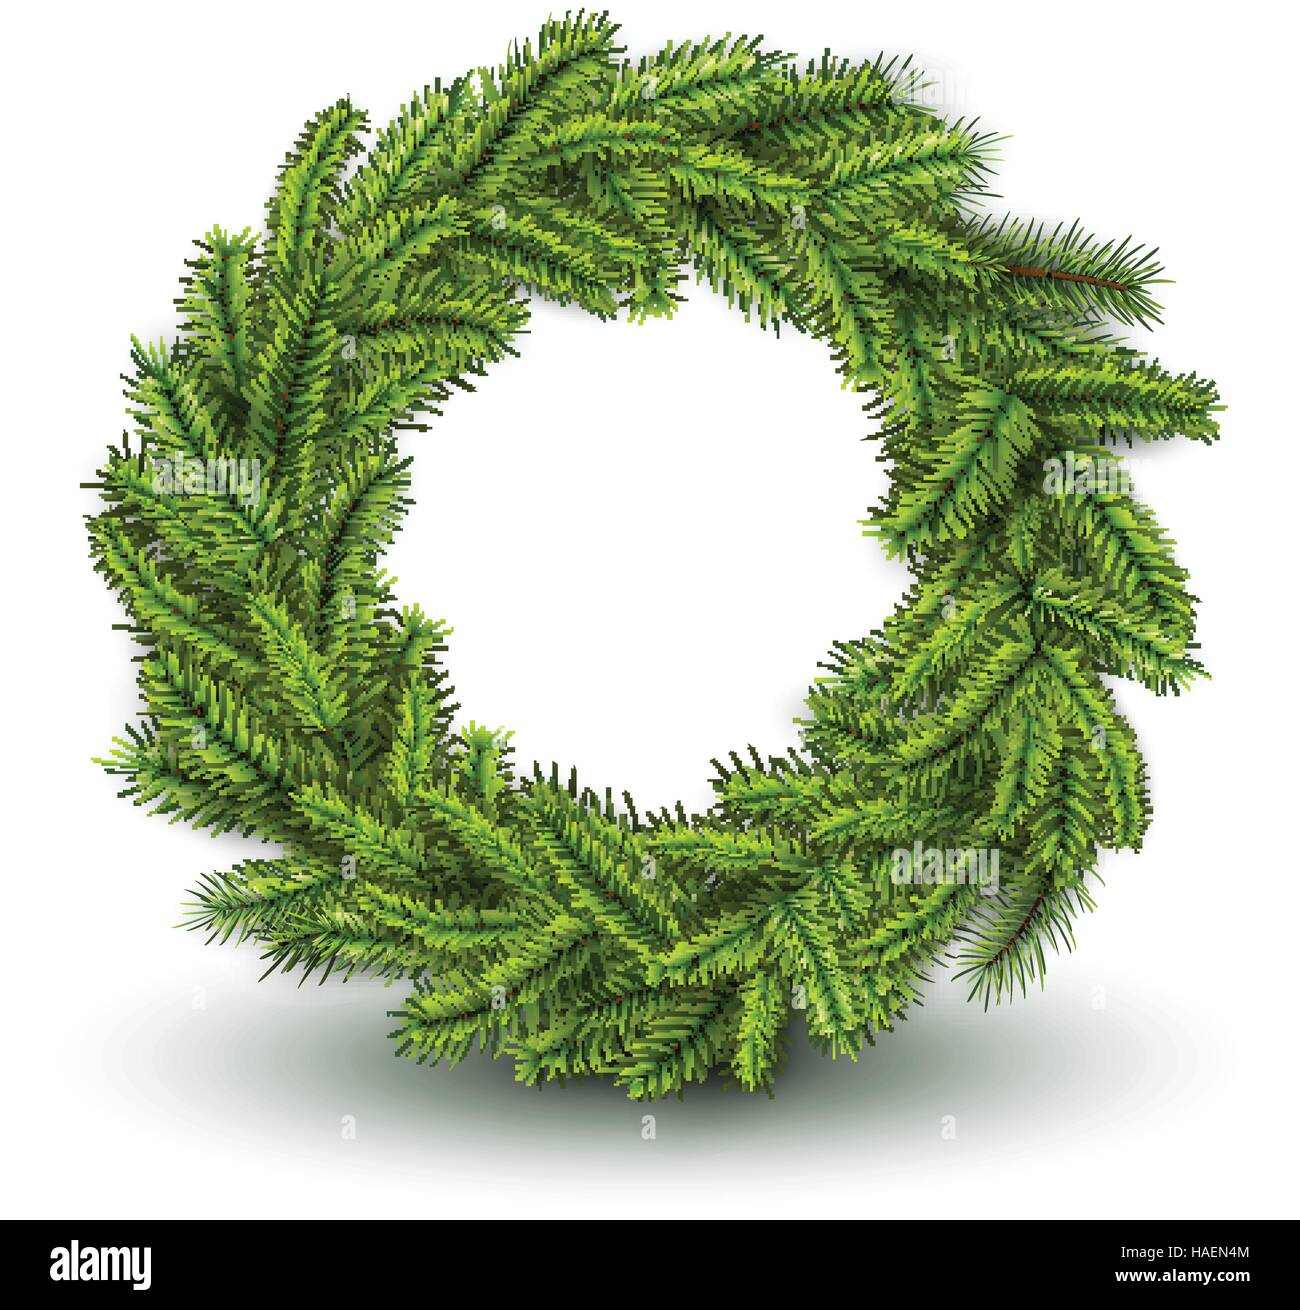 Christmas Wreath Vector.White Card With Christmas Wreath Vector 3d Christmas